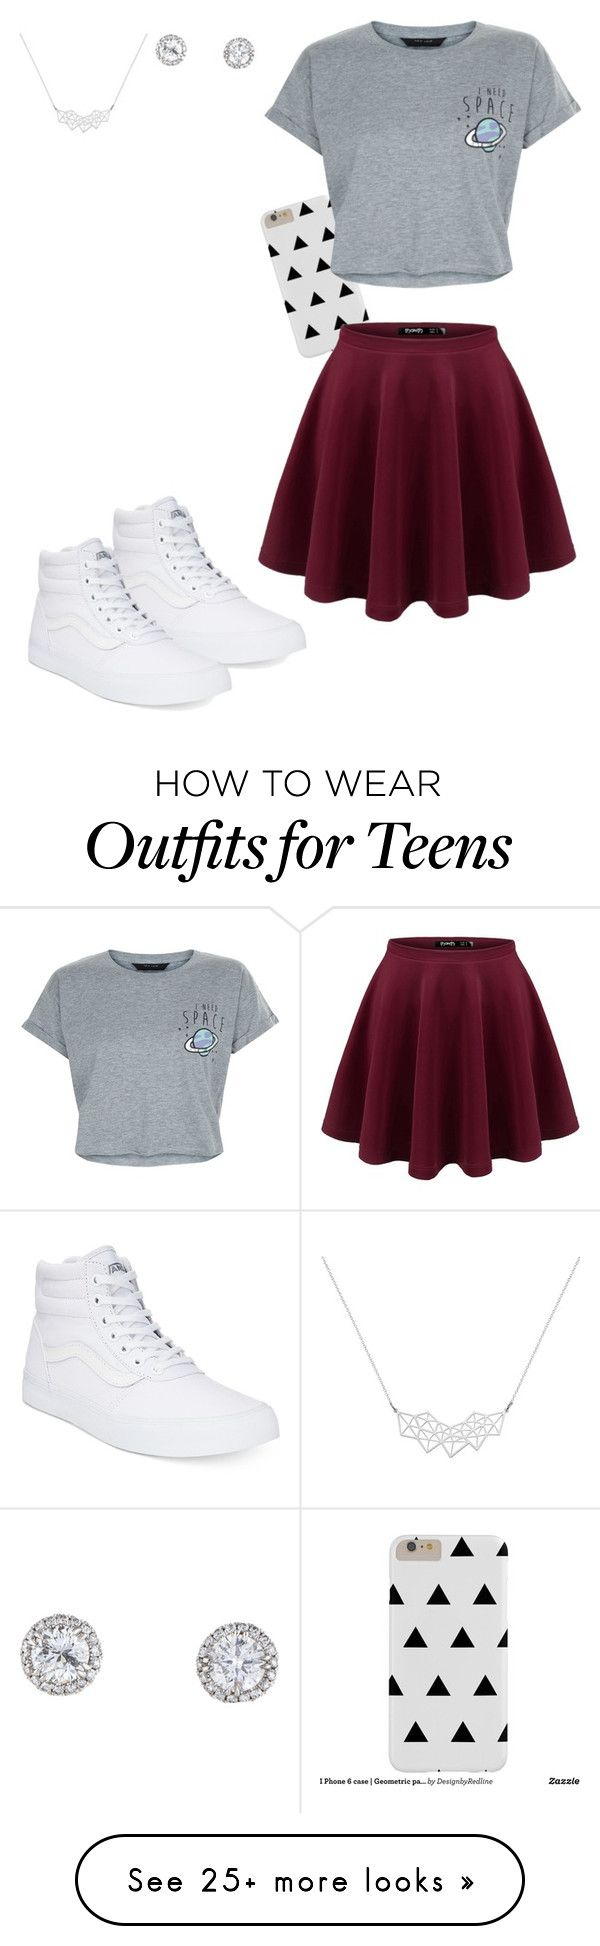 Best fashion ideas on pinterest casual wear cute outfits and